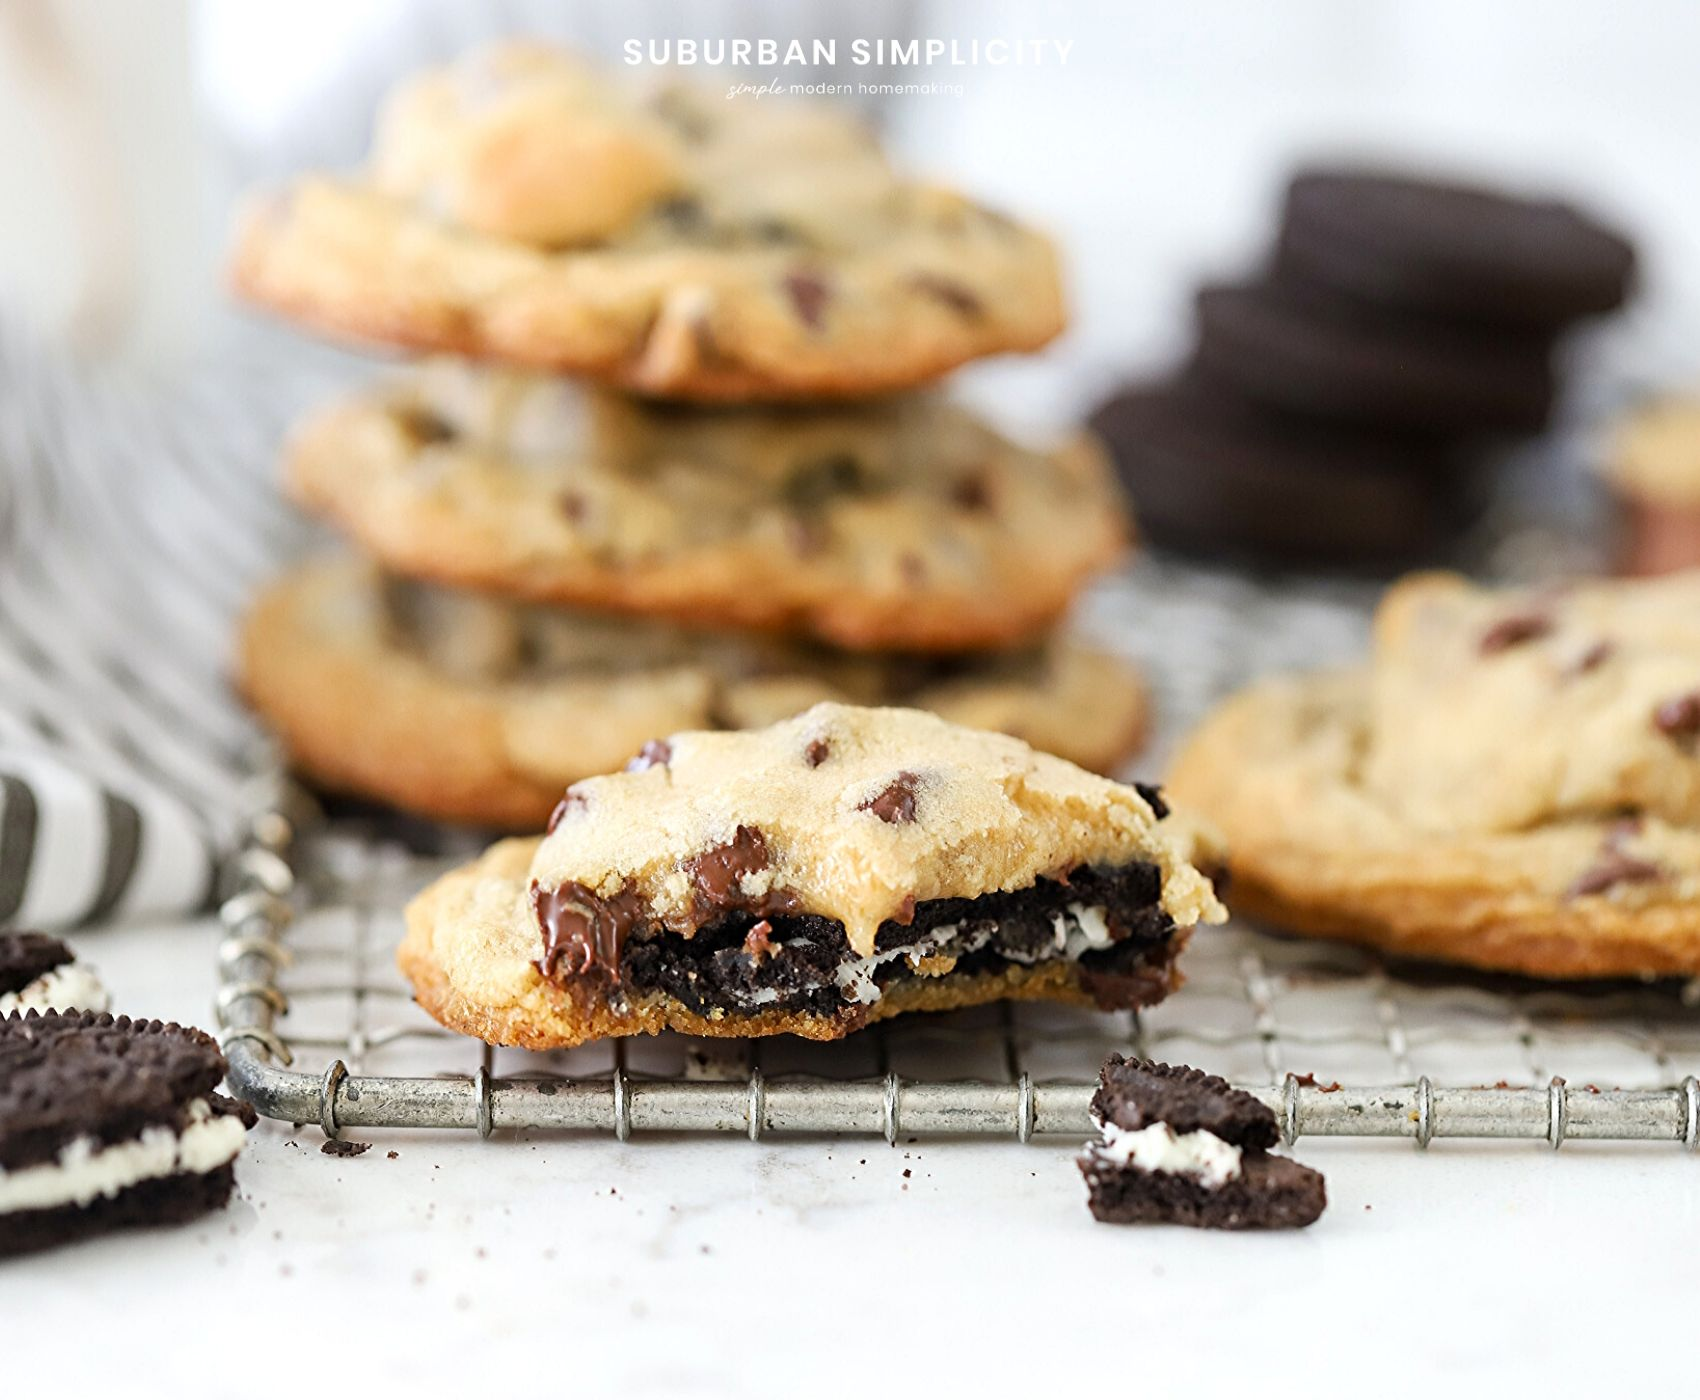 Love Oreos? Then you HAVEto try thisOreo Stuffed Chocolate Chip Cookies recipe. Delicious homemadechocolate chip cookies with an Oreo cookie nestled inside! Best Cookie Ever!